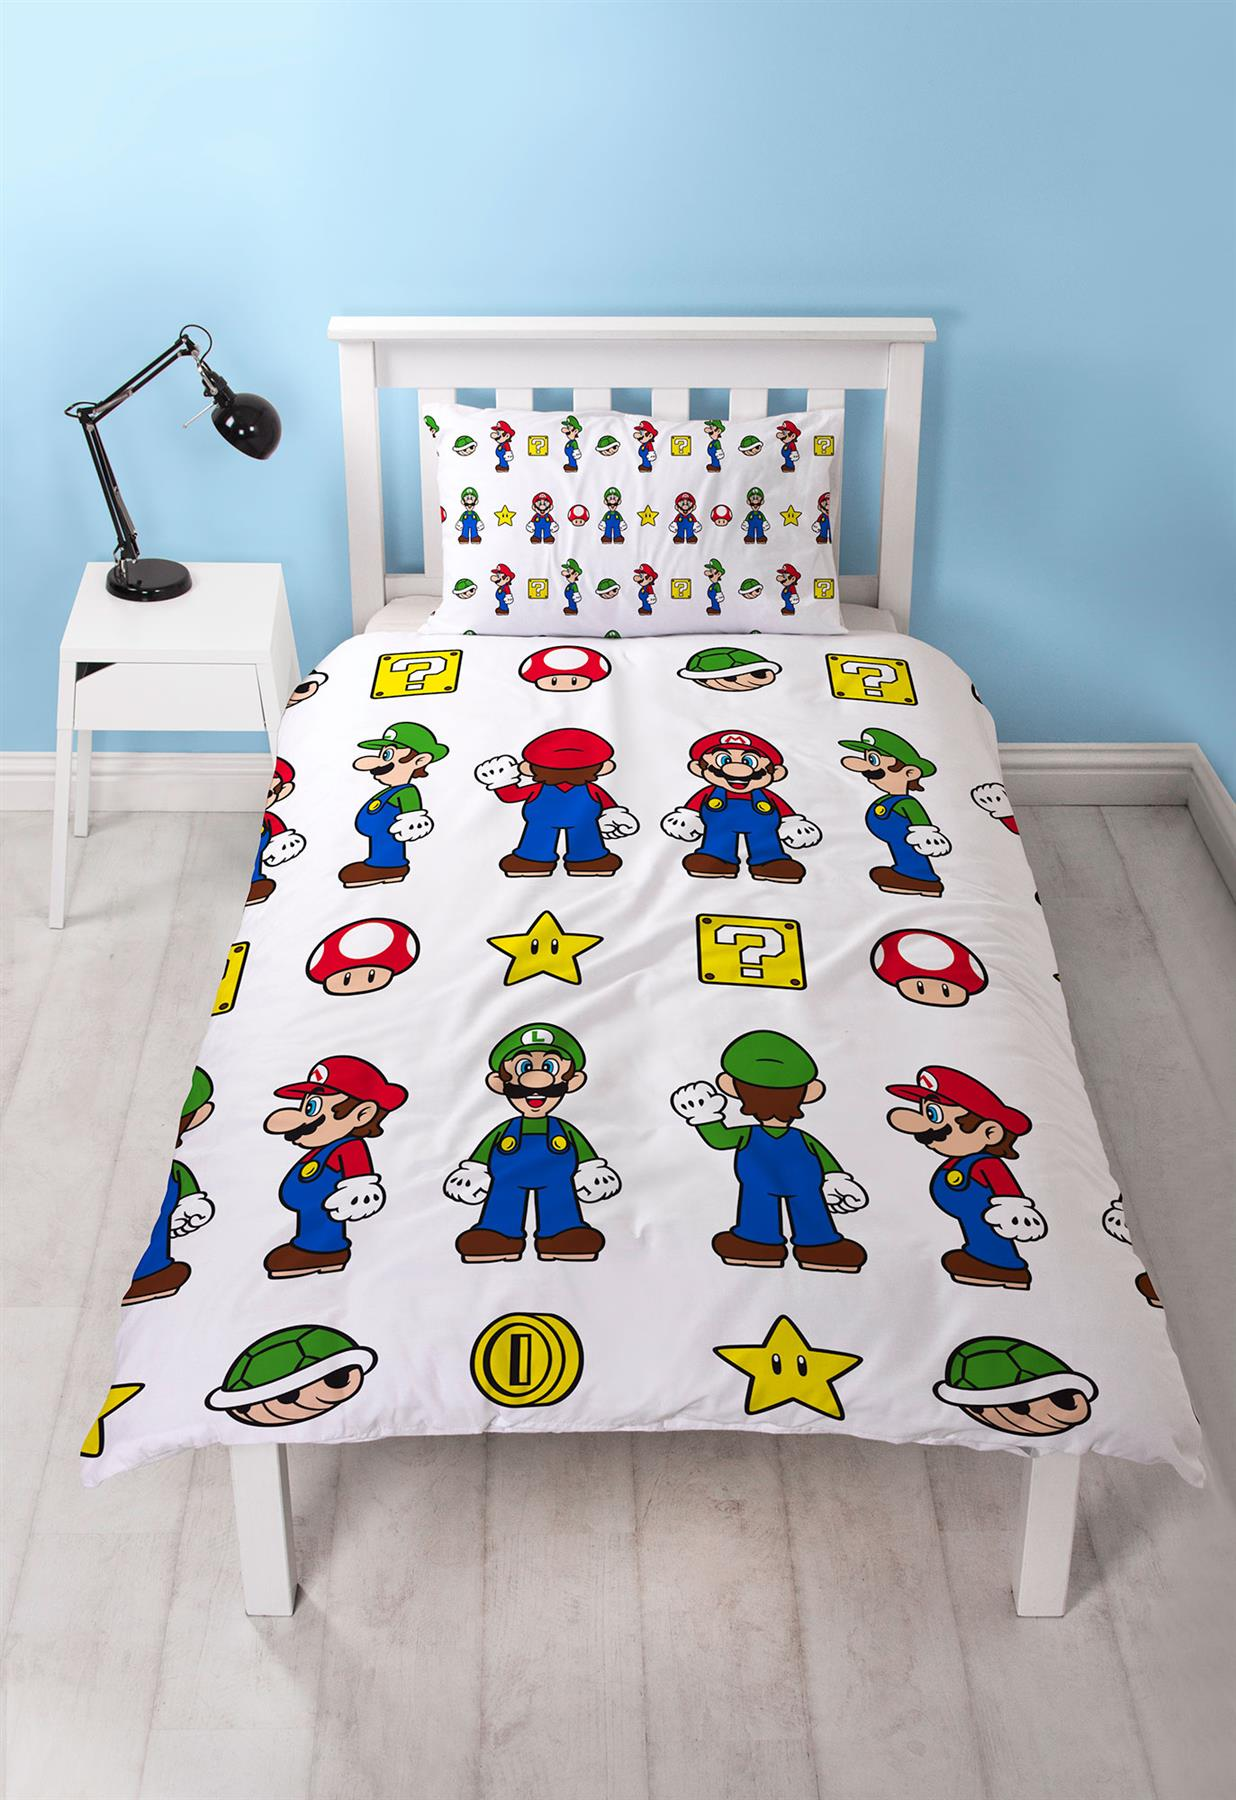 Official-Nintendo-Super-Mario-Licensed-Duvet-Covers-Single-Double-Odyssey-Maker thumbnail 33